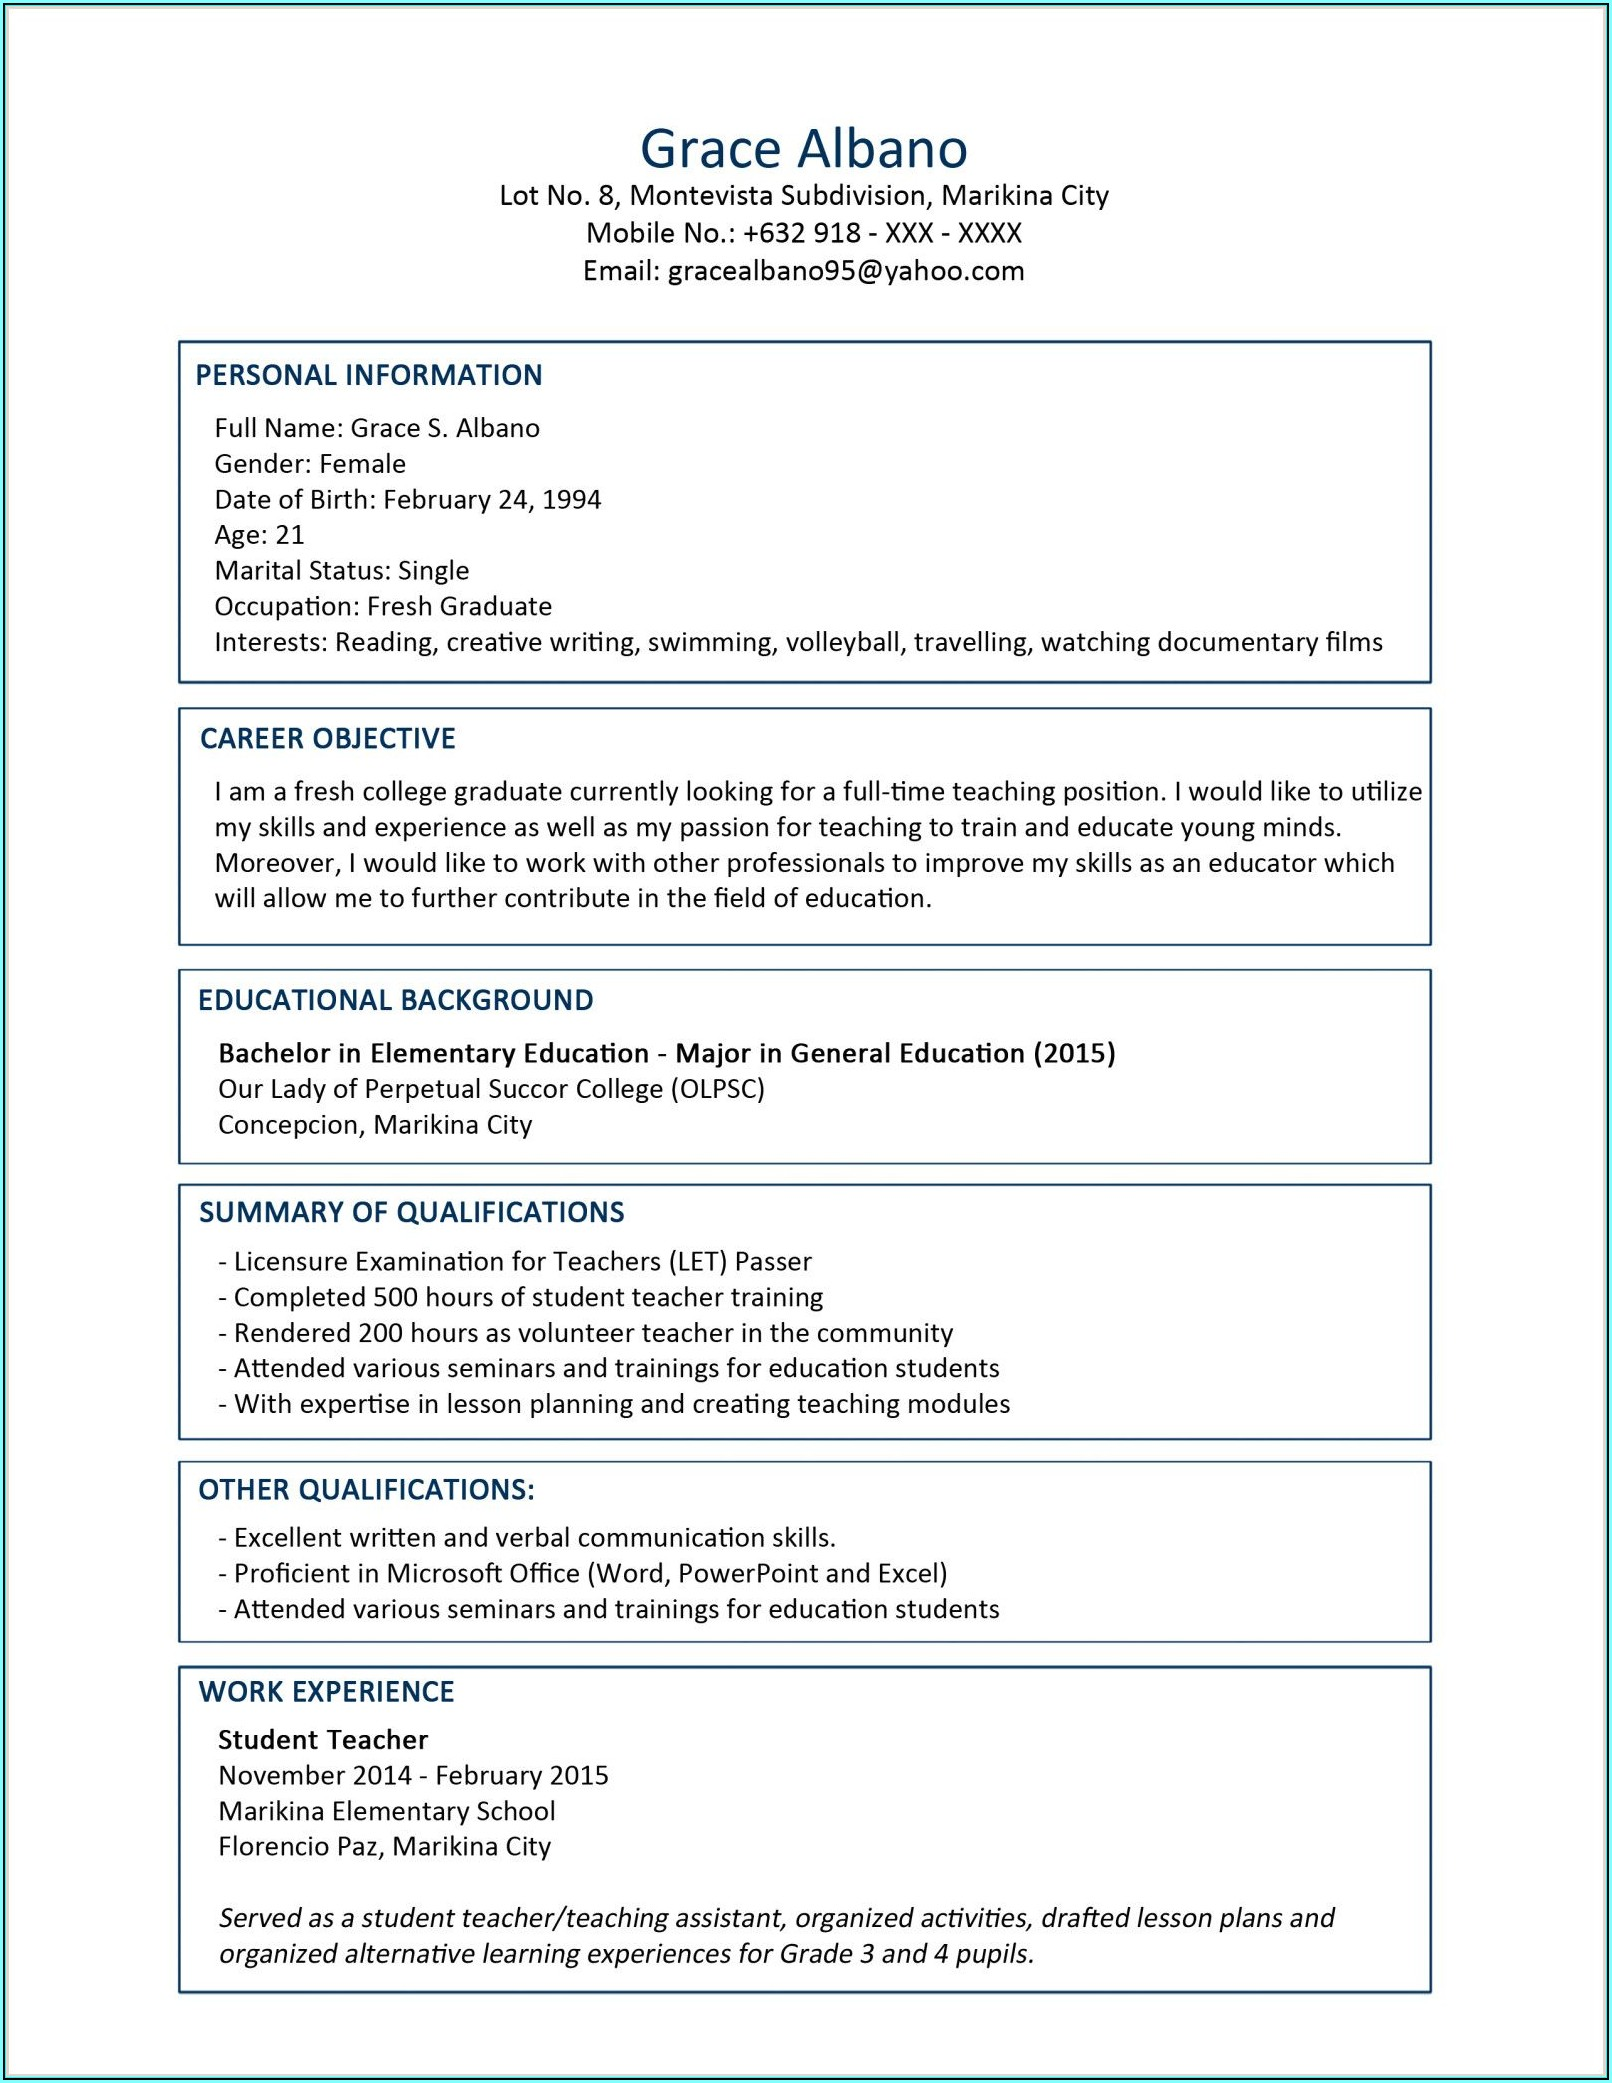 Resume Format Download In Ms Word For Accountant